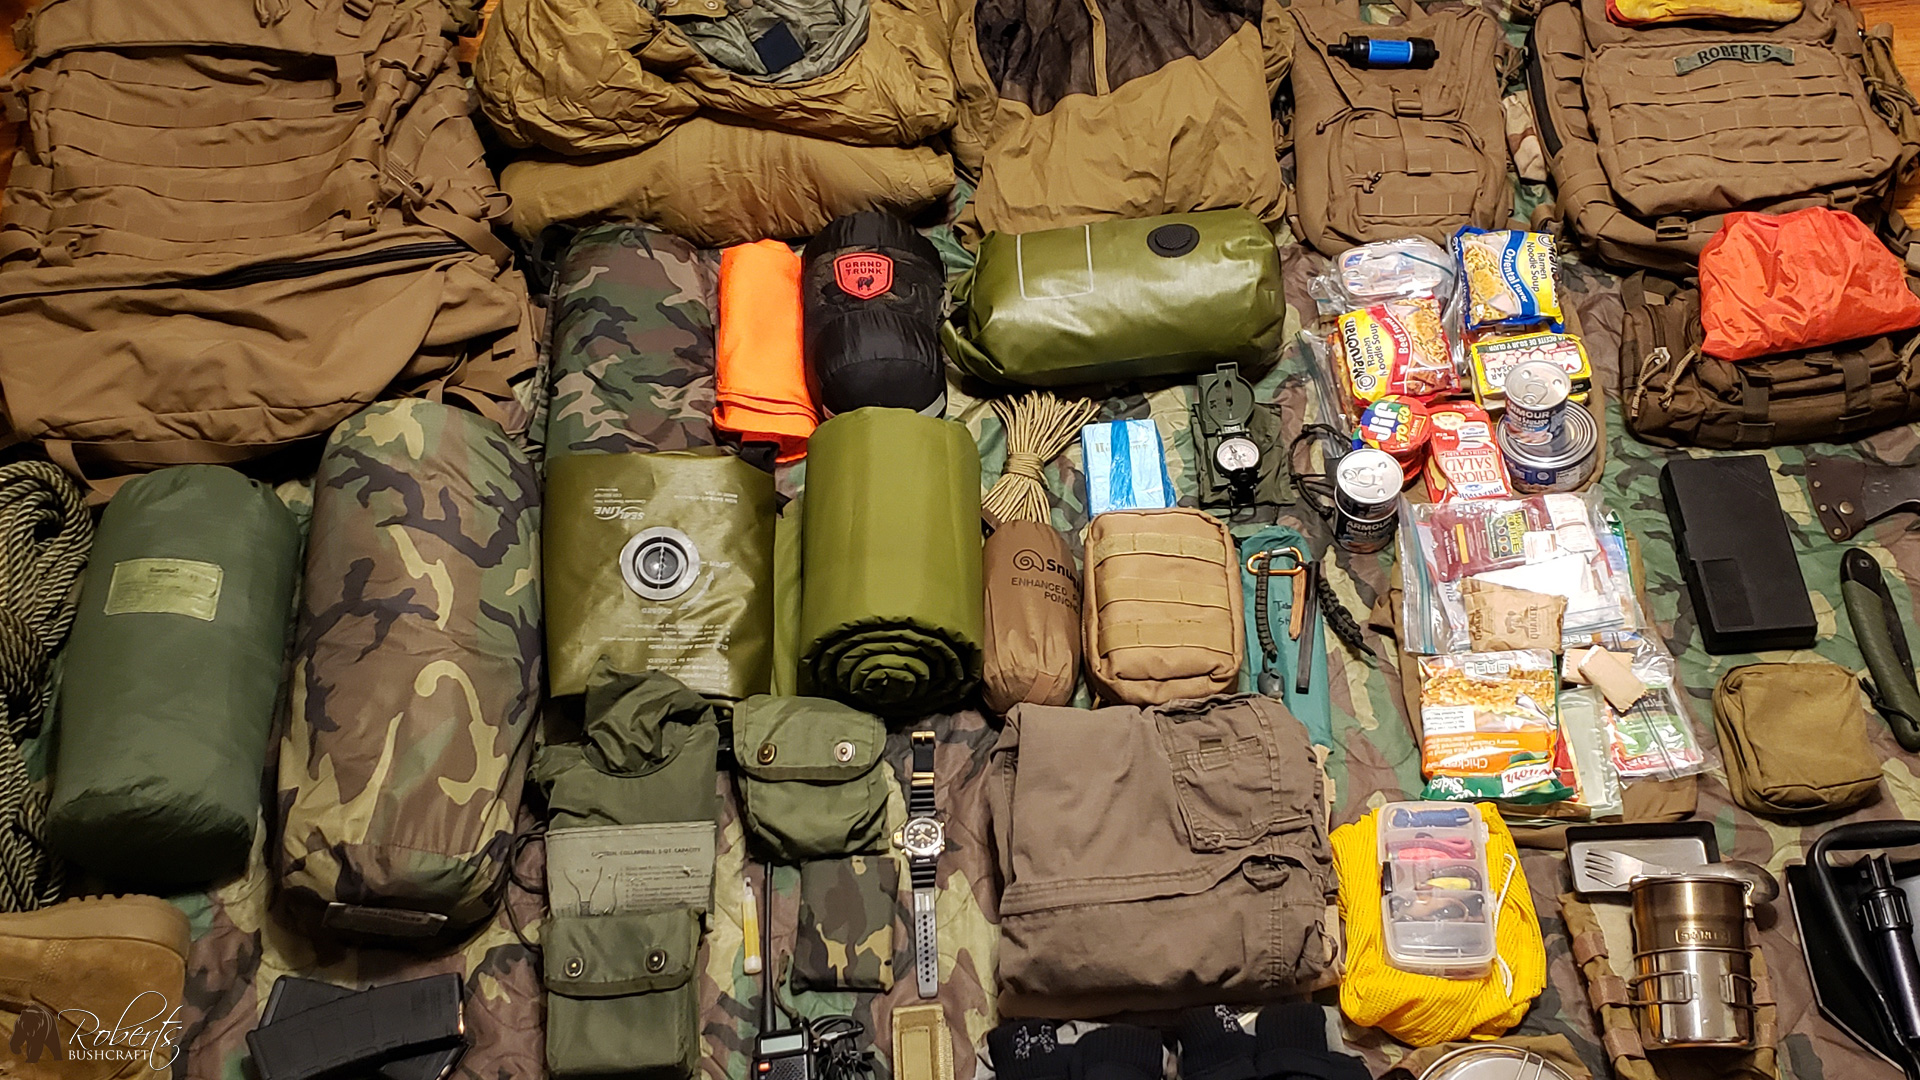 My FILBE Bugout Bag Survival Kit